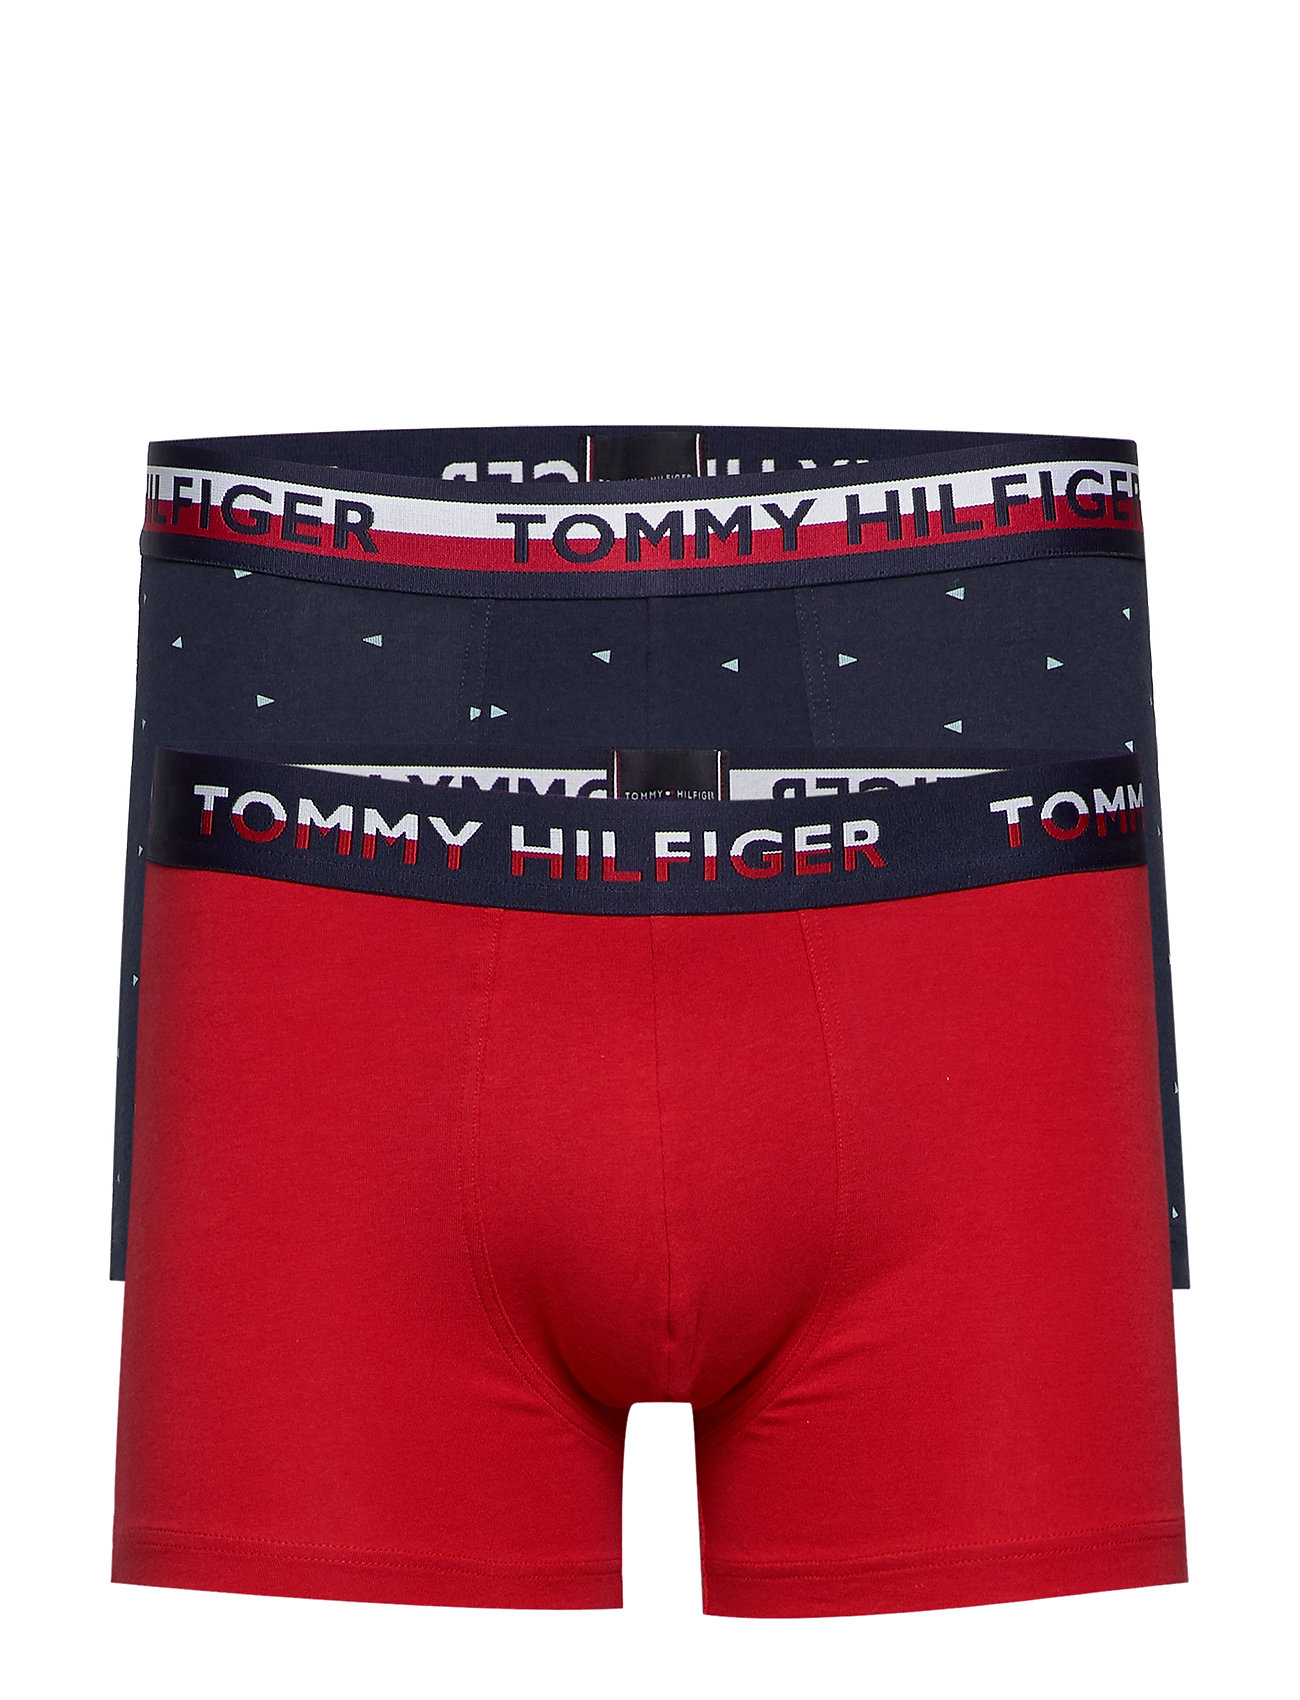 Image of 2p Trunk Print Boxershorts Rød Tommy Hilfiger (3361420507)